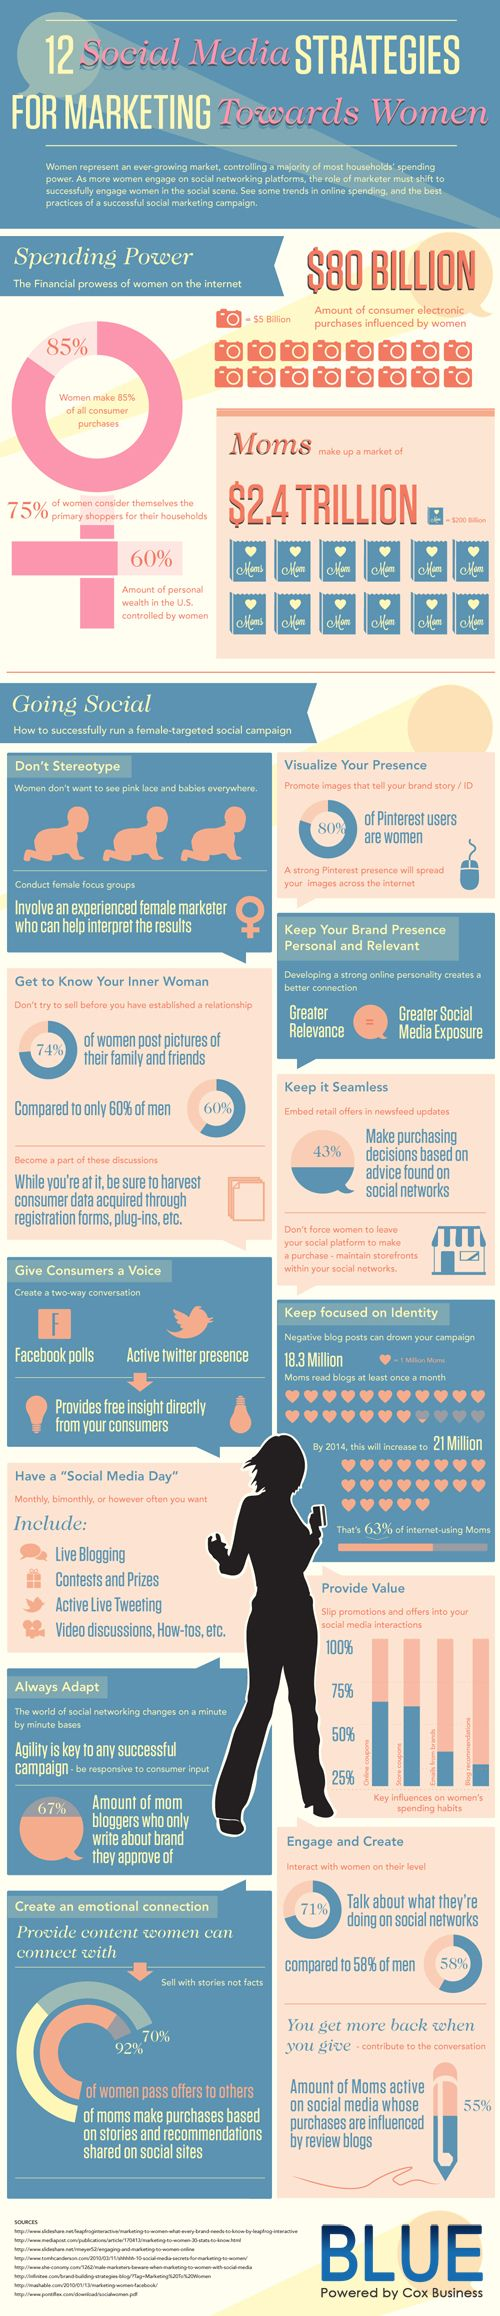 12 social media strategies for marketing to women #socialmedia #infographic Did you know women are 18% more likely than the baseline American to follow a brand on Facebook or other social media sites. Women are also 12% more likely to use the Internet to purchase a product featured on TV (Neilsen).